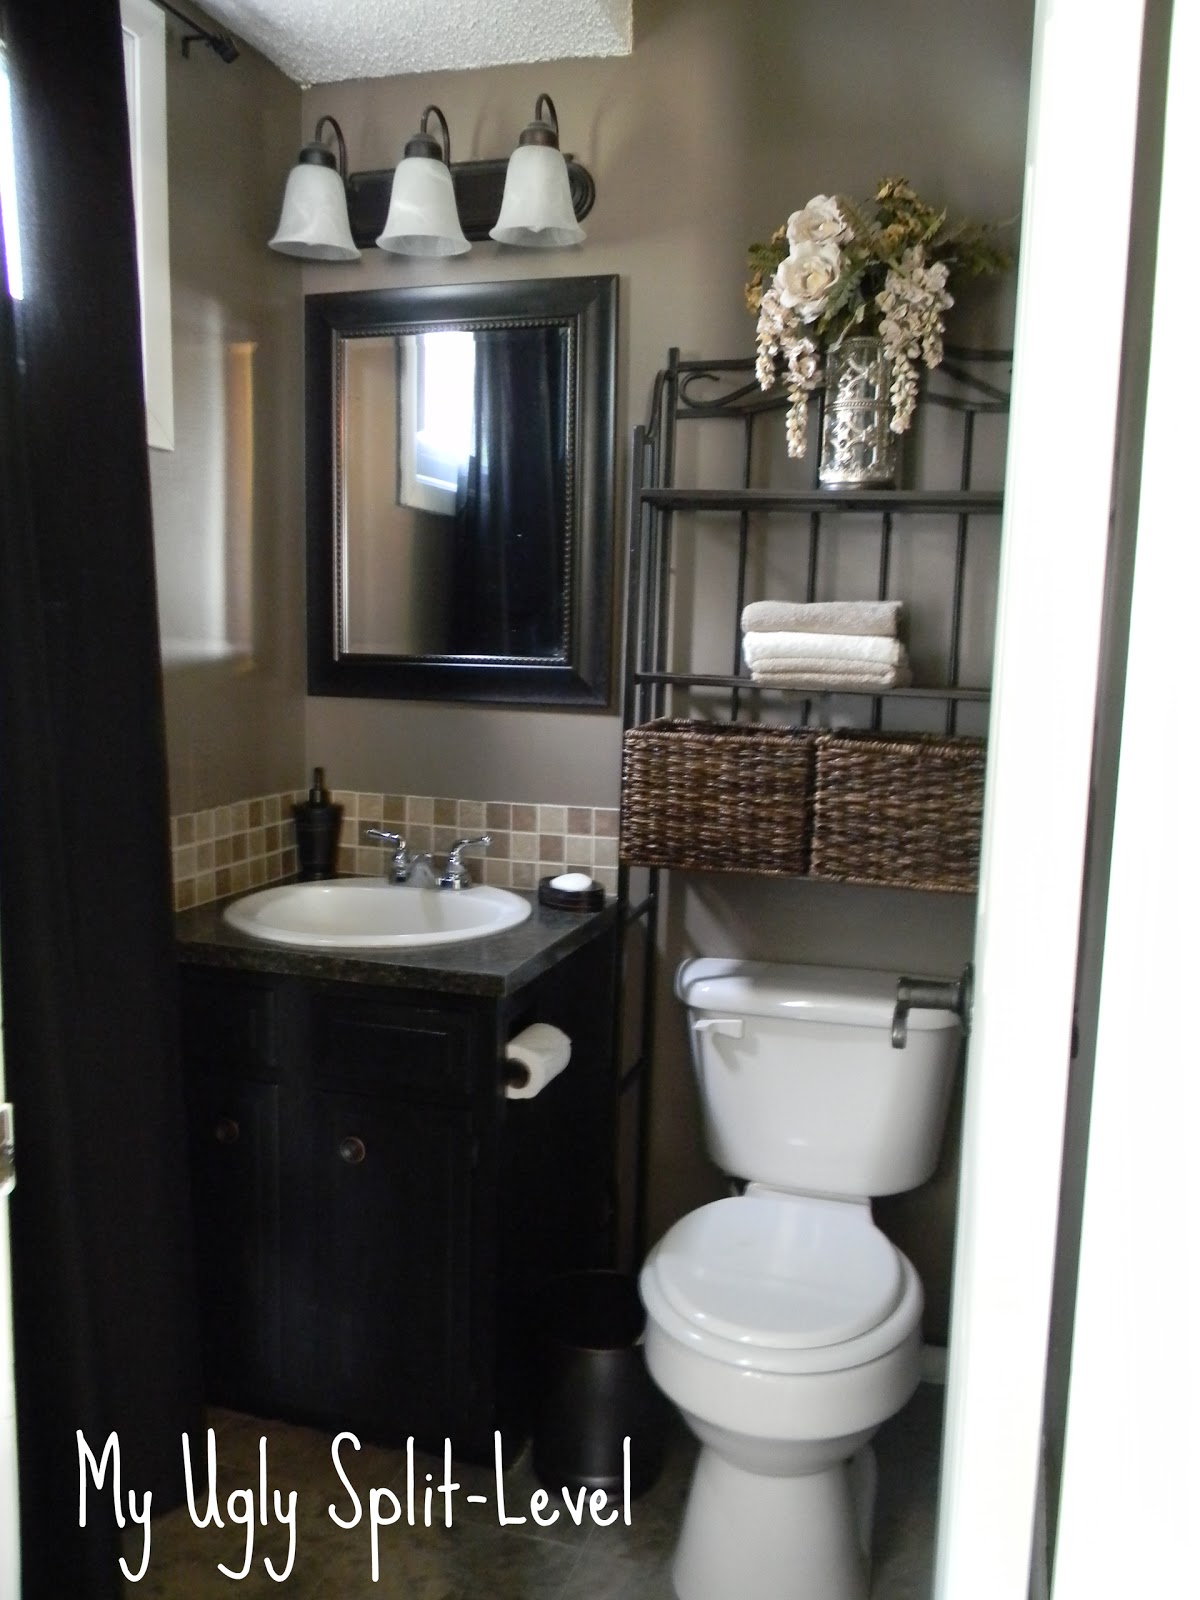 My ugly split level the back bathroom - Bathroom decor ideas for small bathrooms ...